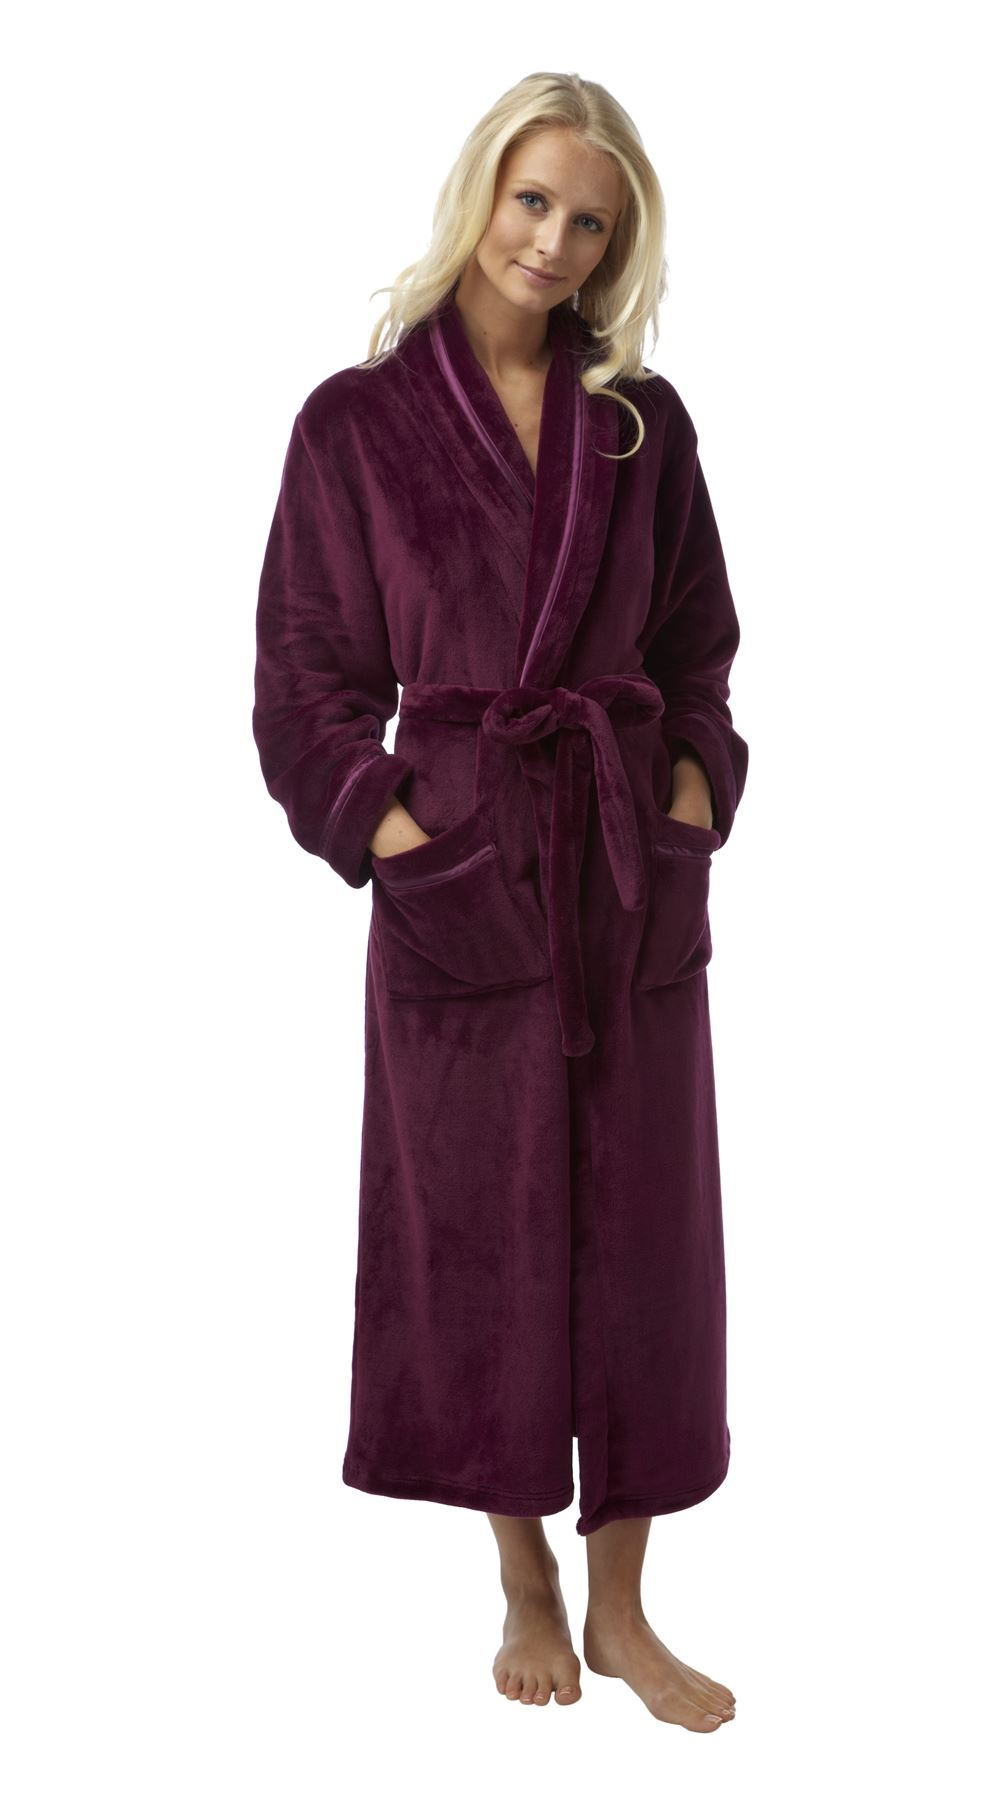 Find women's sleepwear and pajama sets in a variety of fabrics & styles from cotton sleep shirts to satin chemises, & more. Shop great deals now!